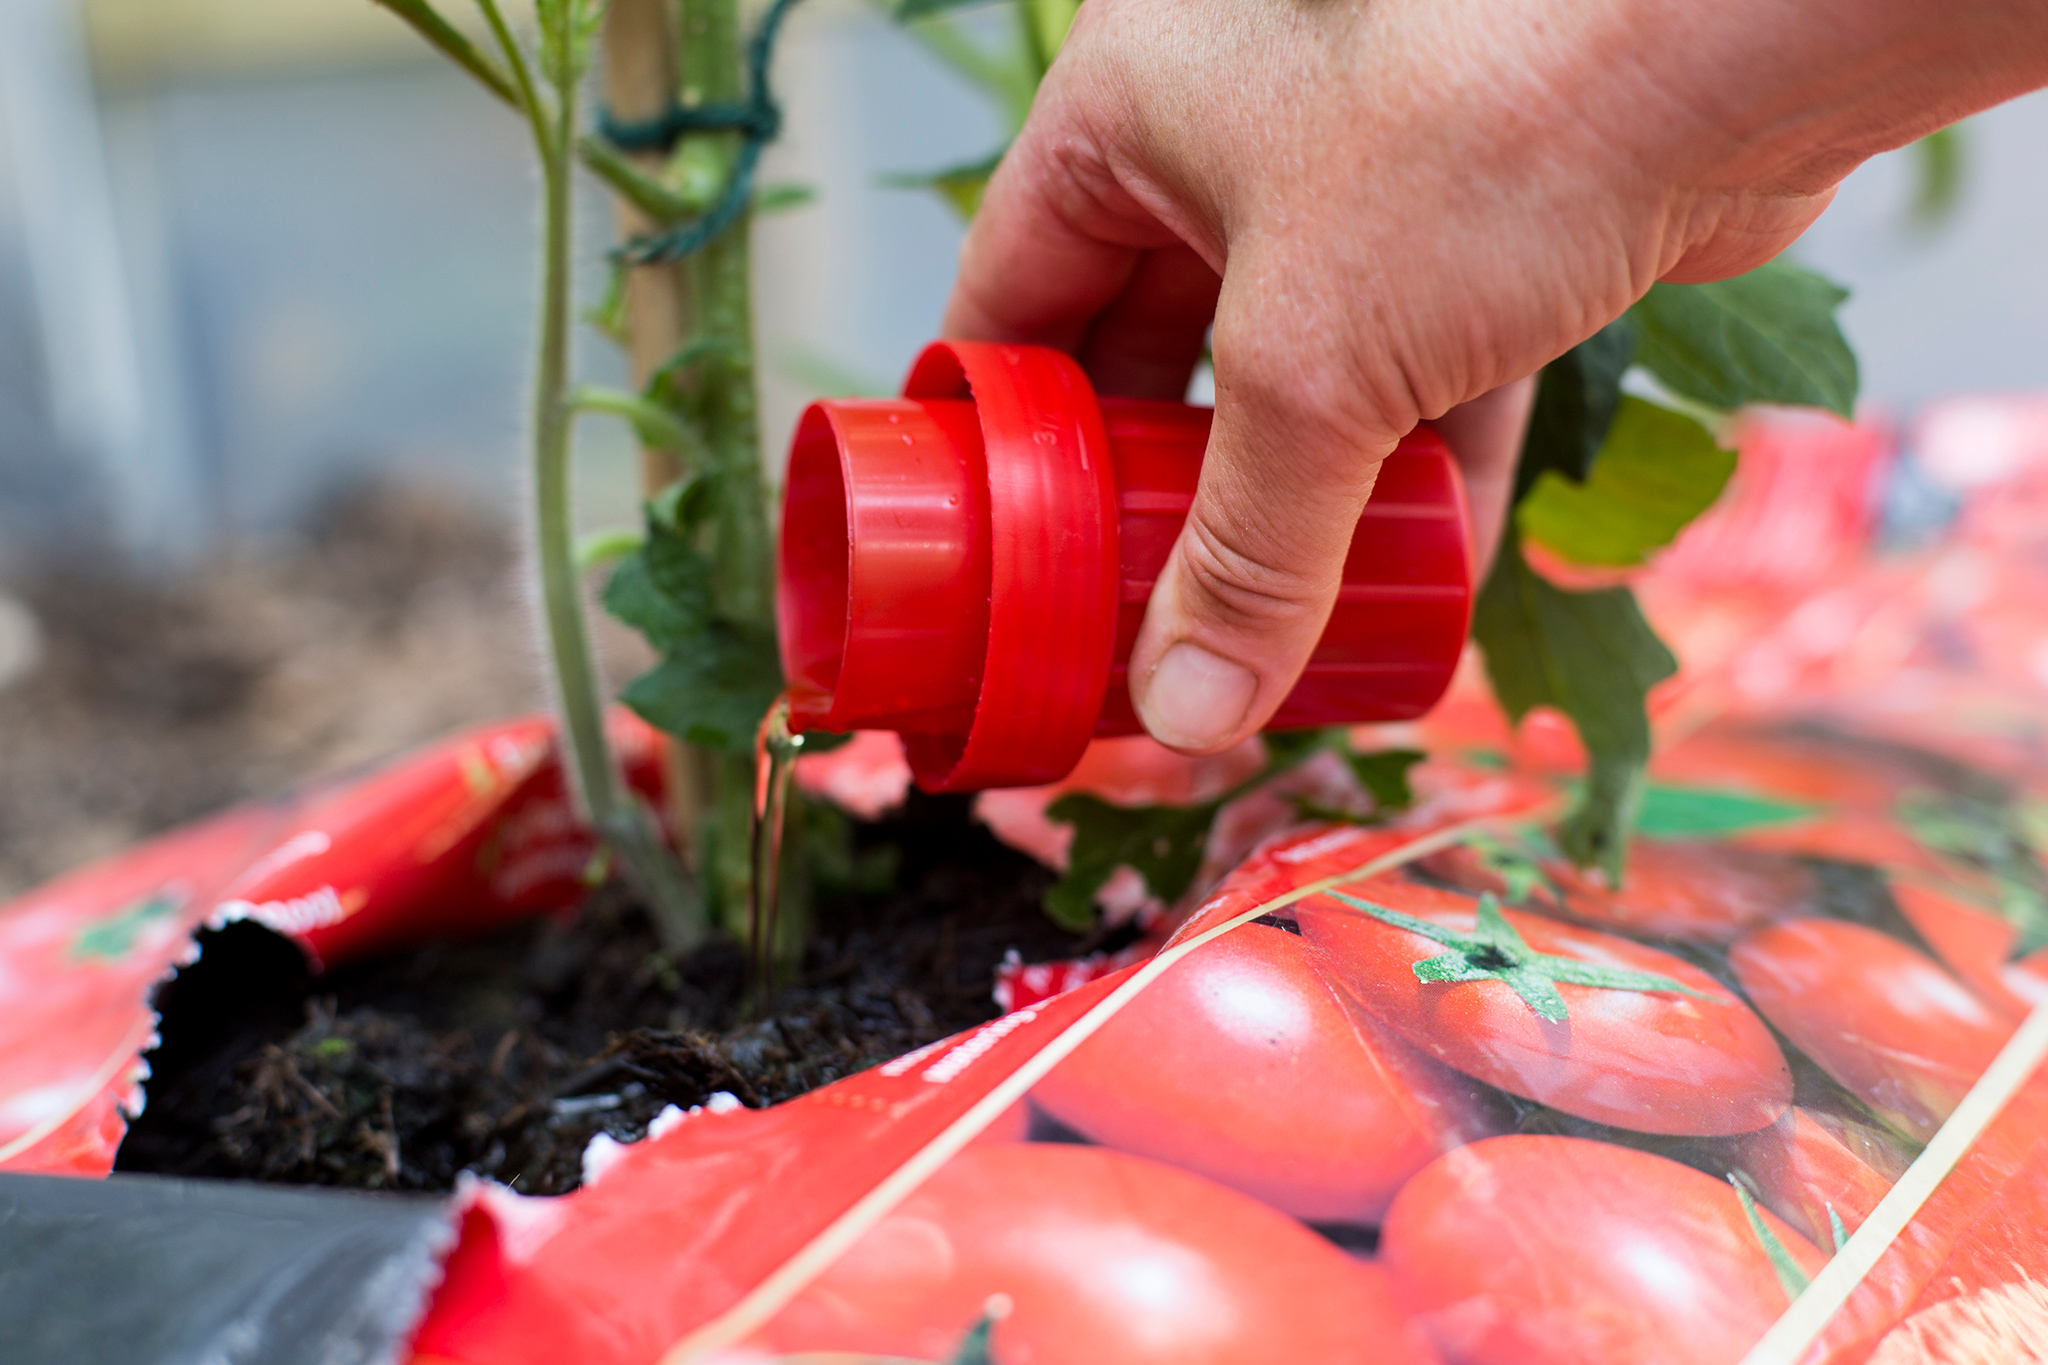 Feeding tomatoes in a growing bag